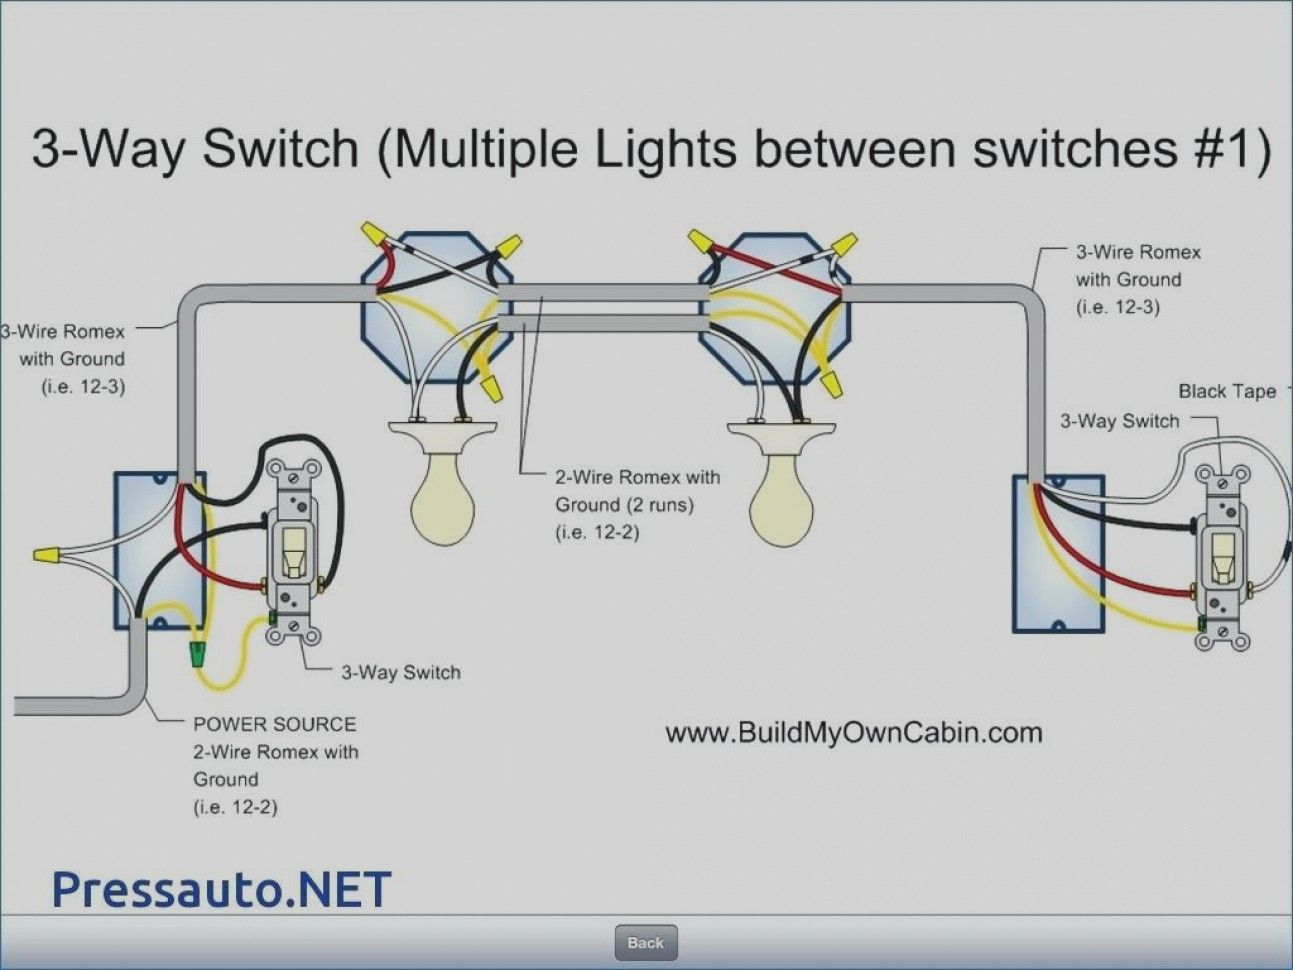 Wiring Diagram For Three Way Switch With Multiple Lights